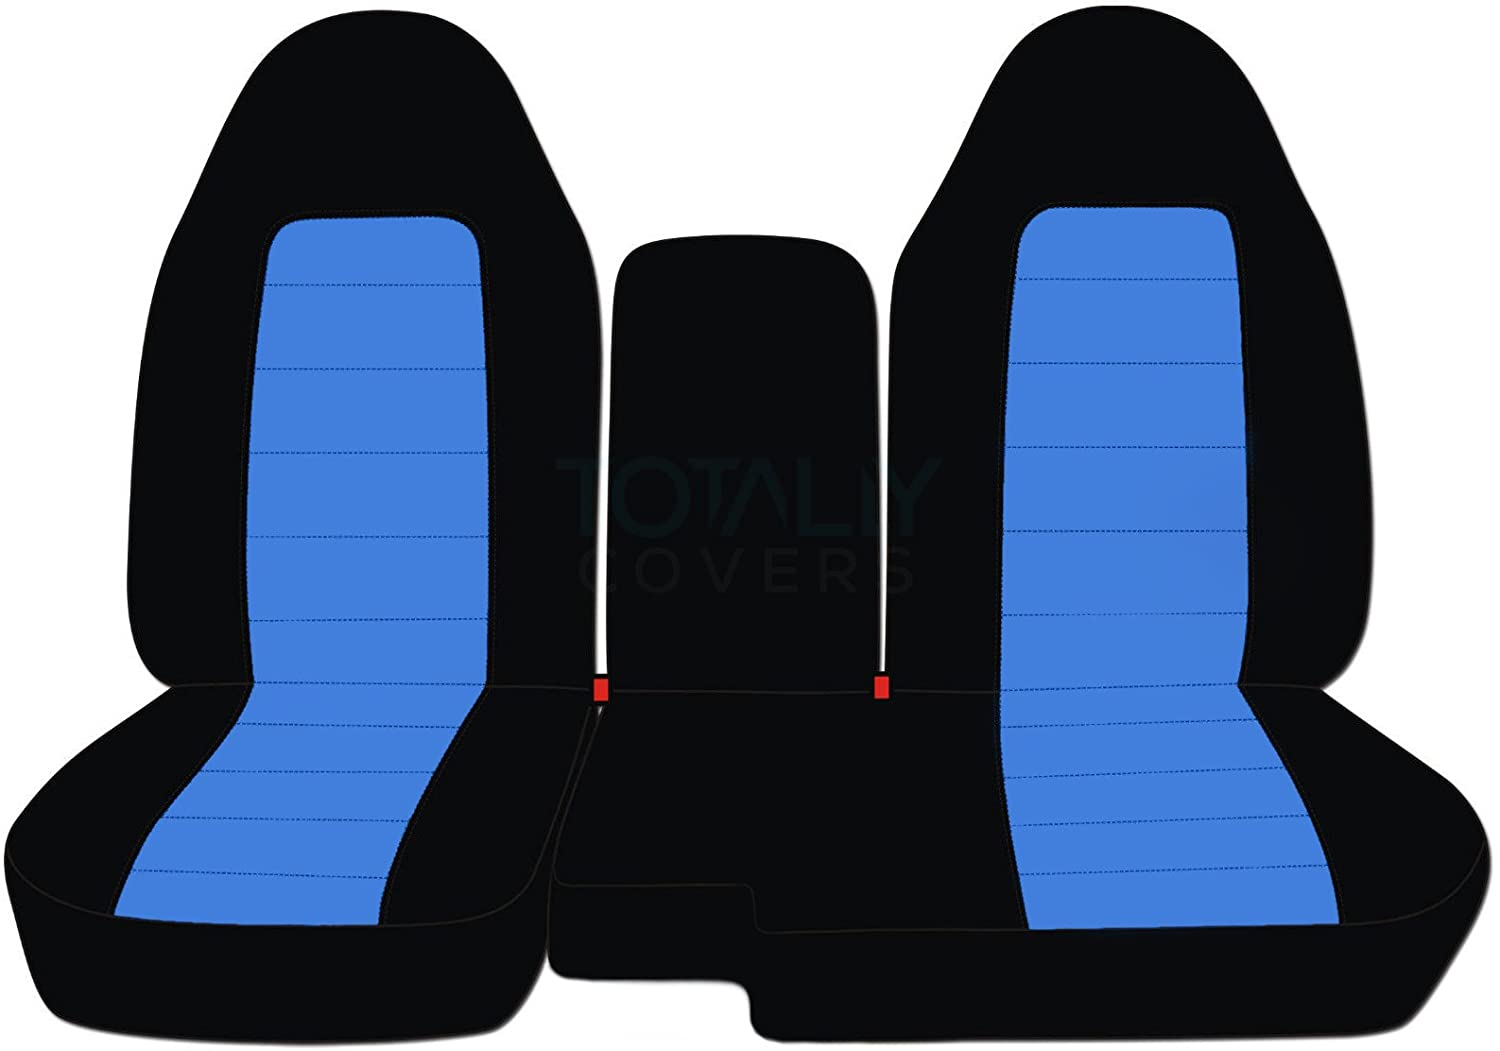 2004-2012 Ford Ranger/Mazda B-Series Two-Tone Truck Seat Covers (60/40 Split Bench) with Center Console/Armrest Cover: Black & Navy Blue (21 Colors) 2005 2006 2007 2008 2009 2010 2011 Designcovers